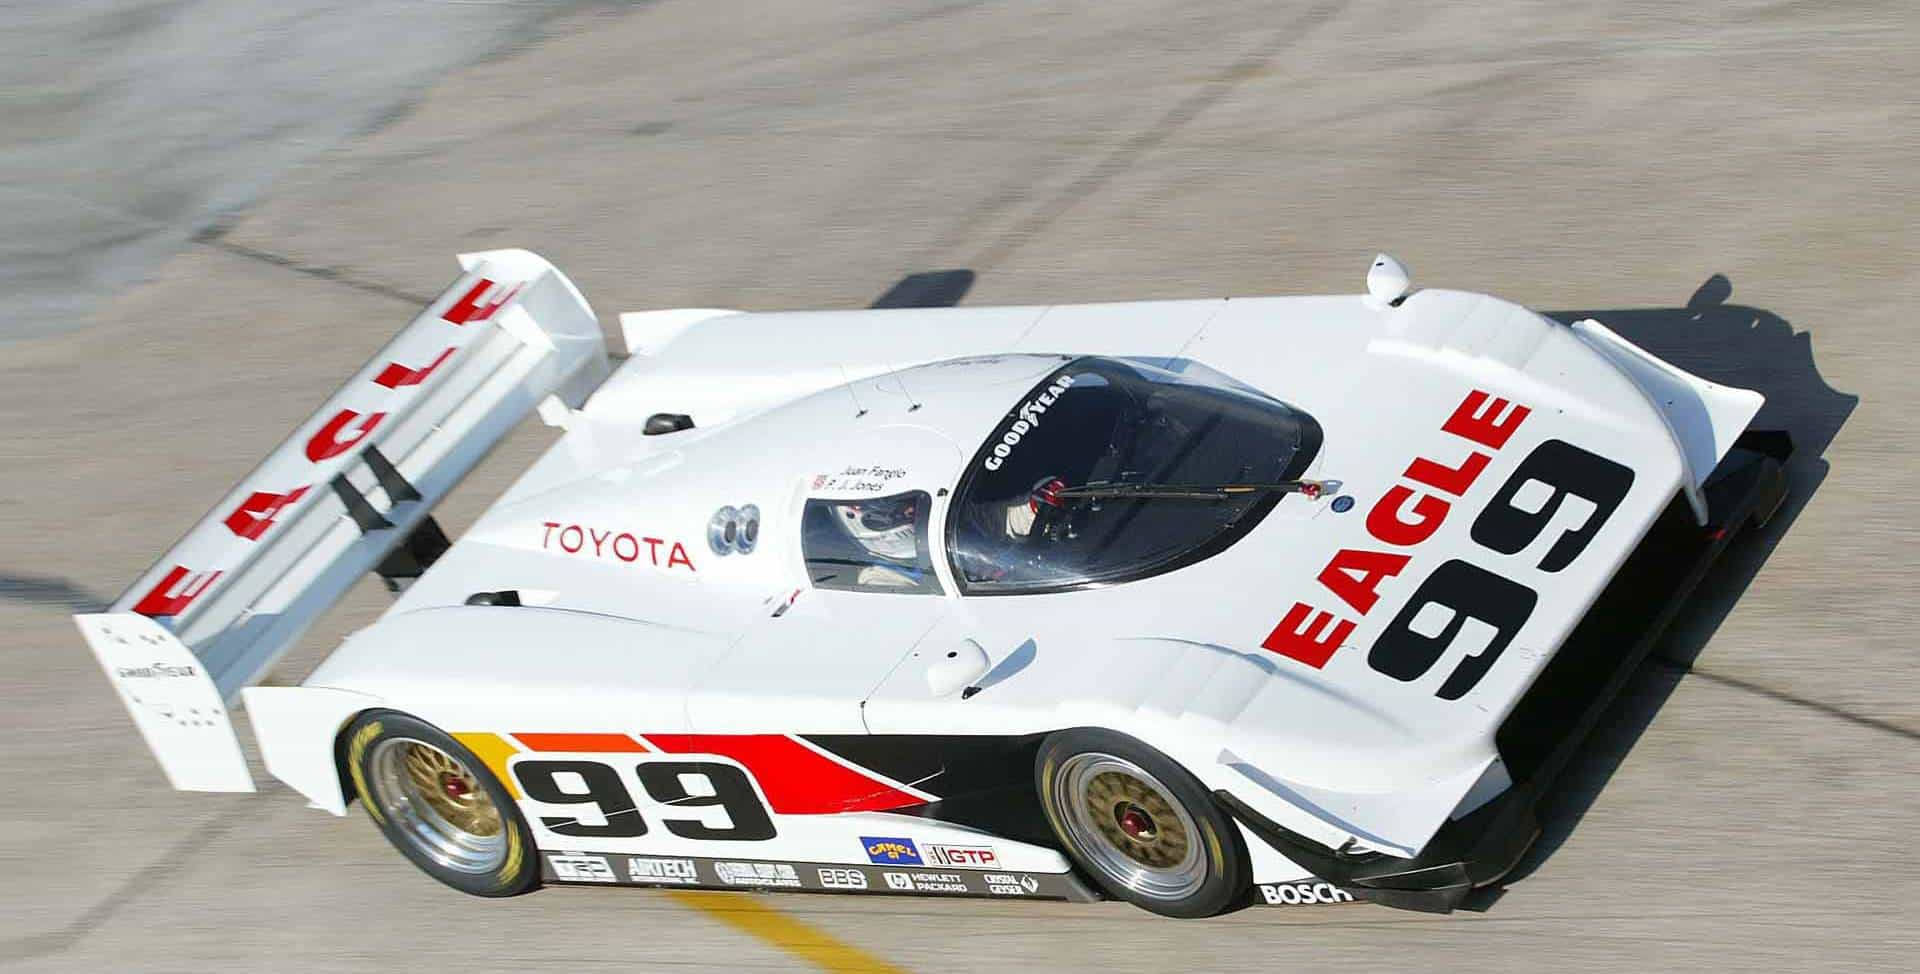 Eagle-Toyota MkIII on track